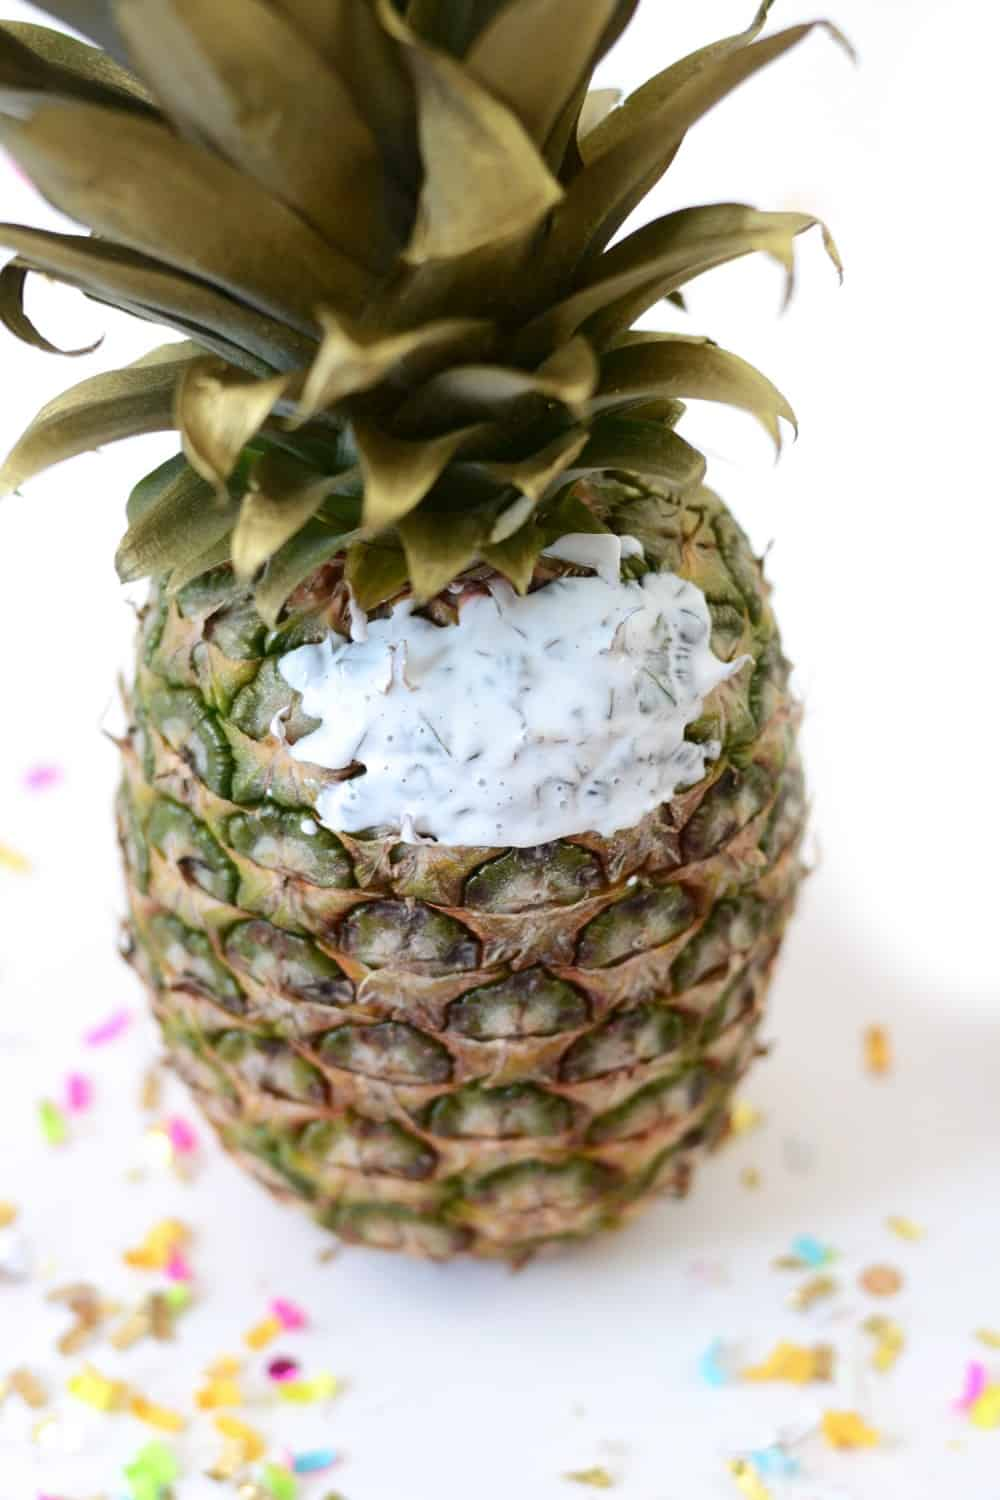 Mod Podge on the side of a pineapple